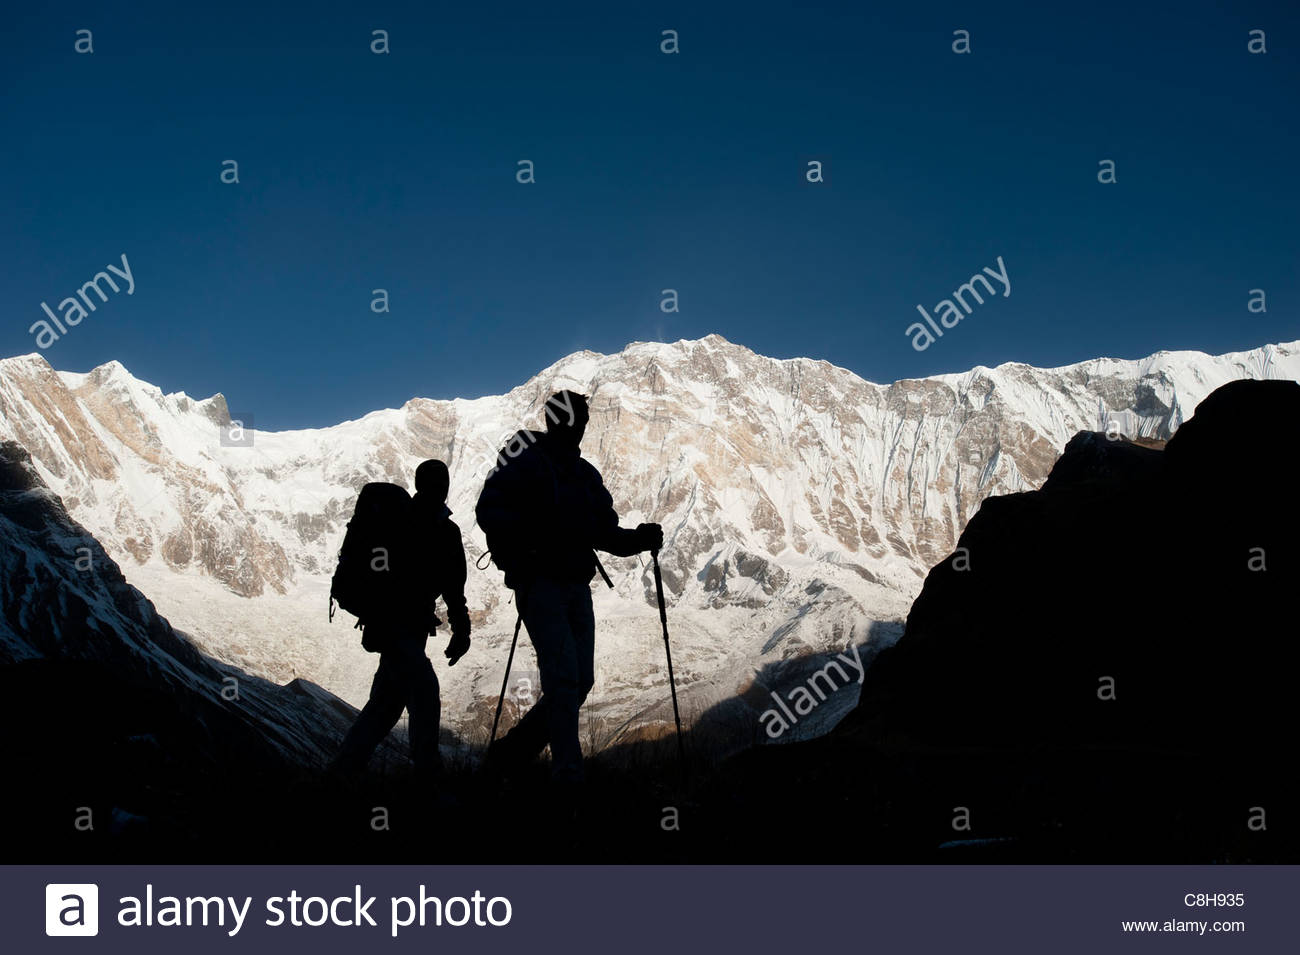 Trekkers on their way down from Annapurna base camp. - Stock Image